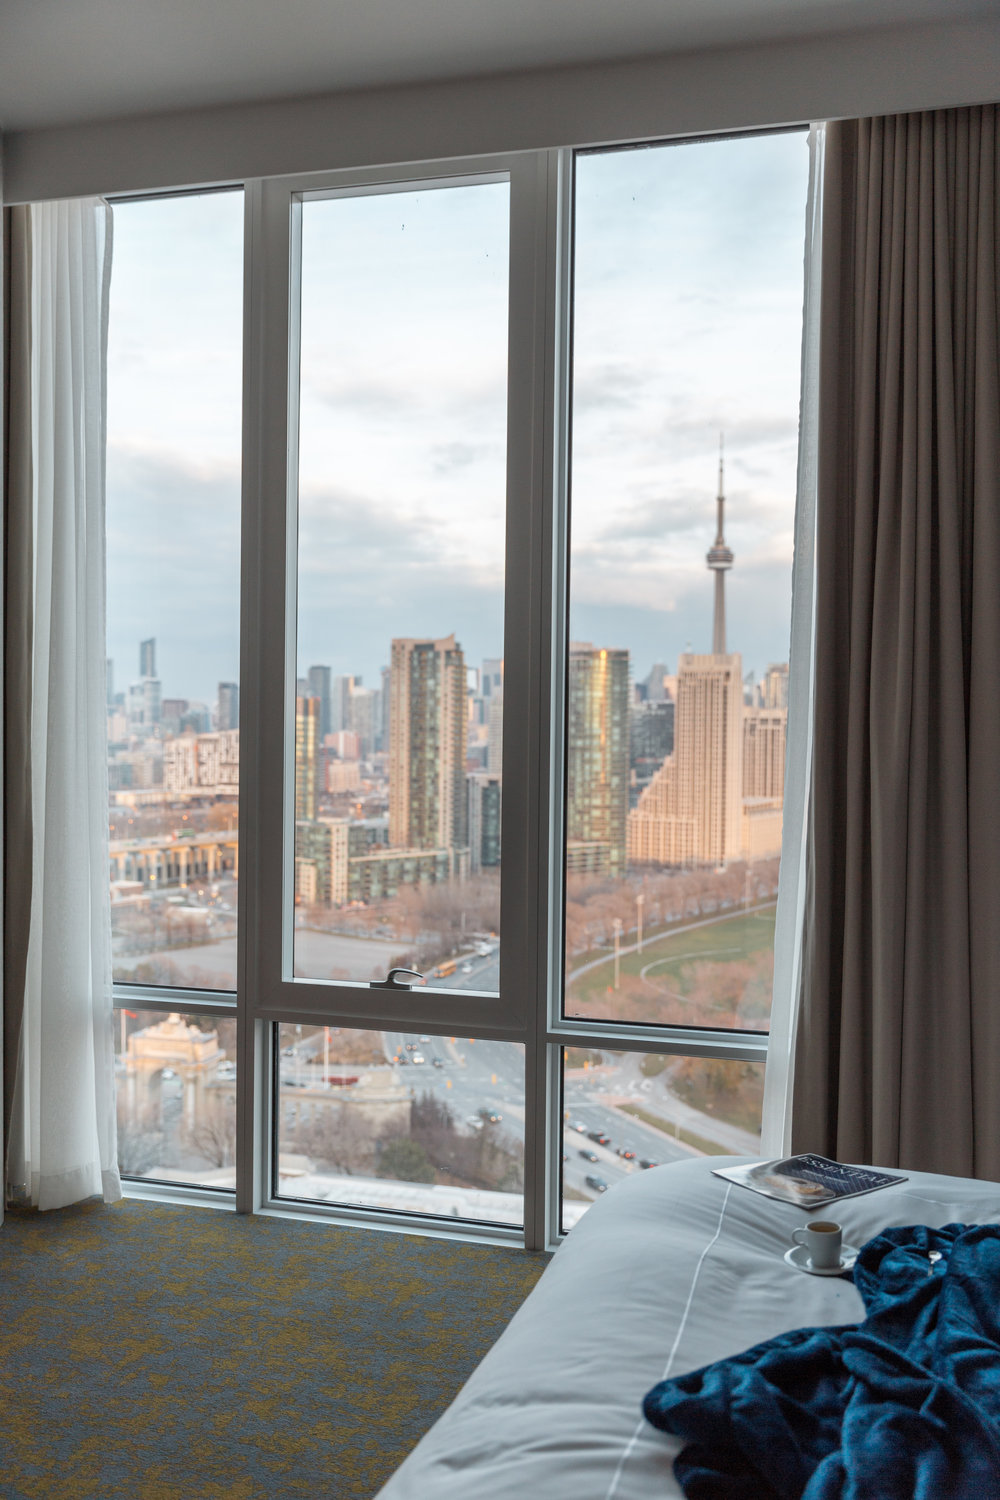 Hotel X in Toronto Luxury Suite View